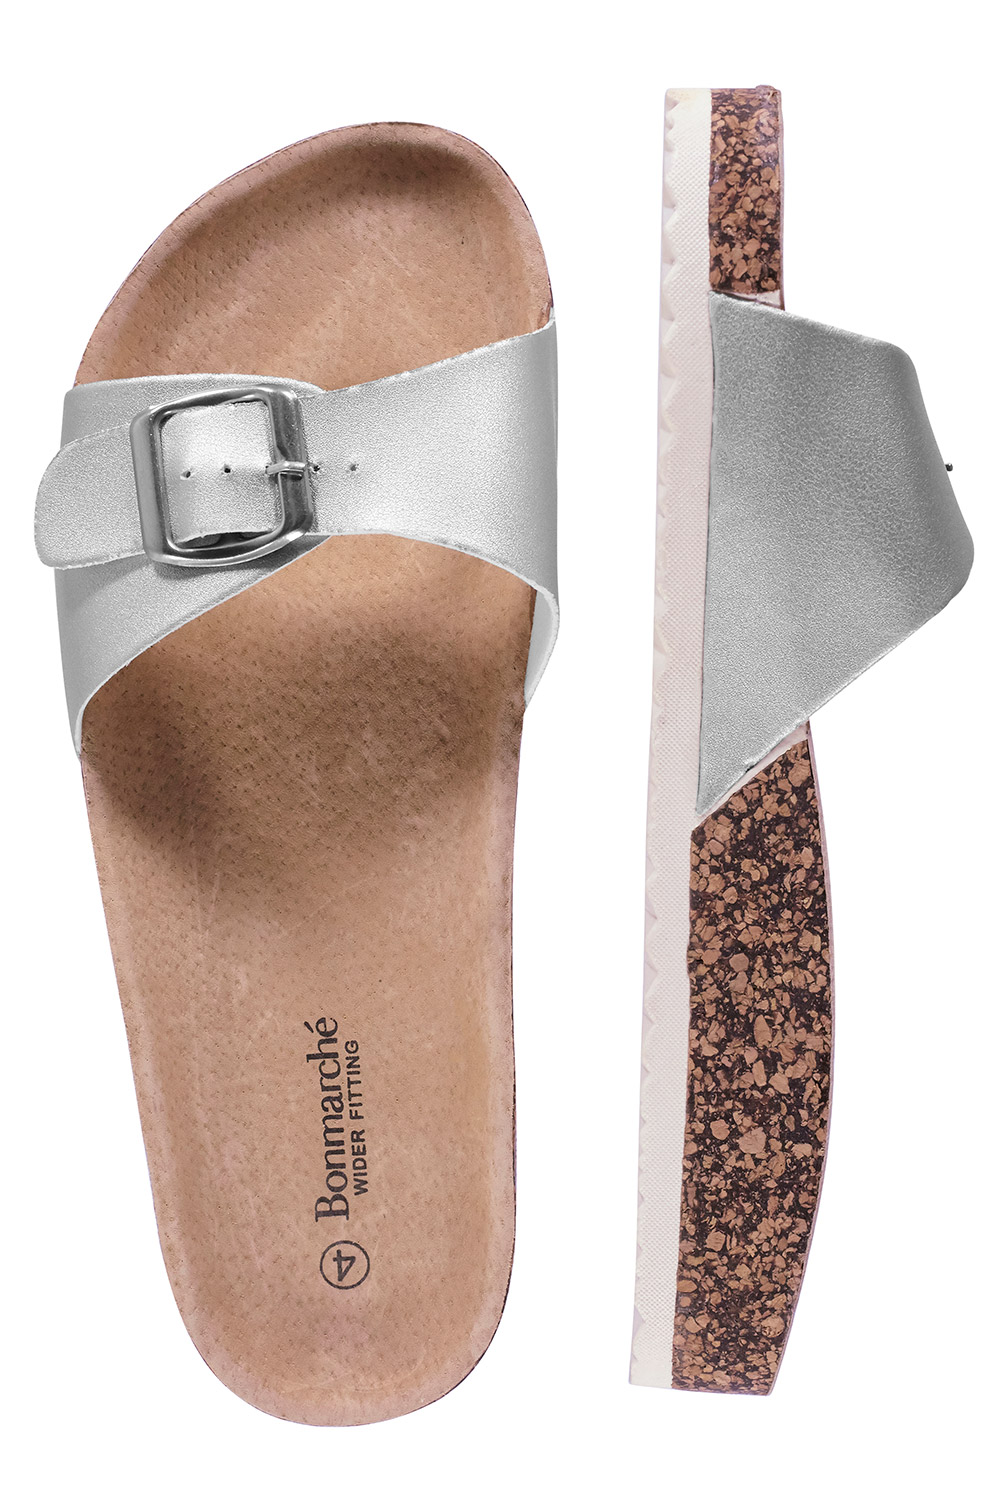 Single Strap Footbed Sandals Tendencies 2 Brown 42 This Review Is Fromsingle